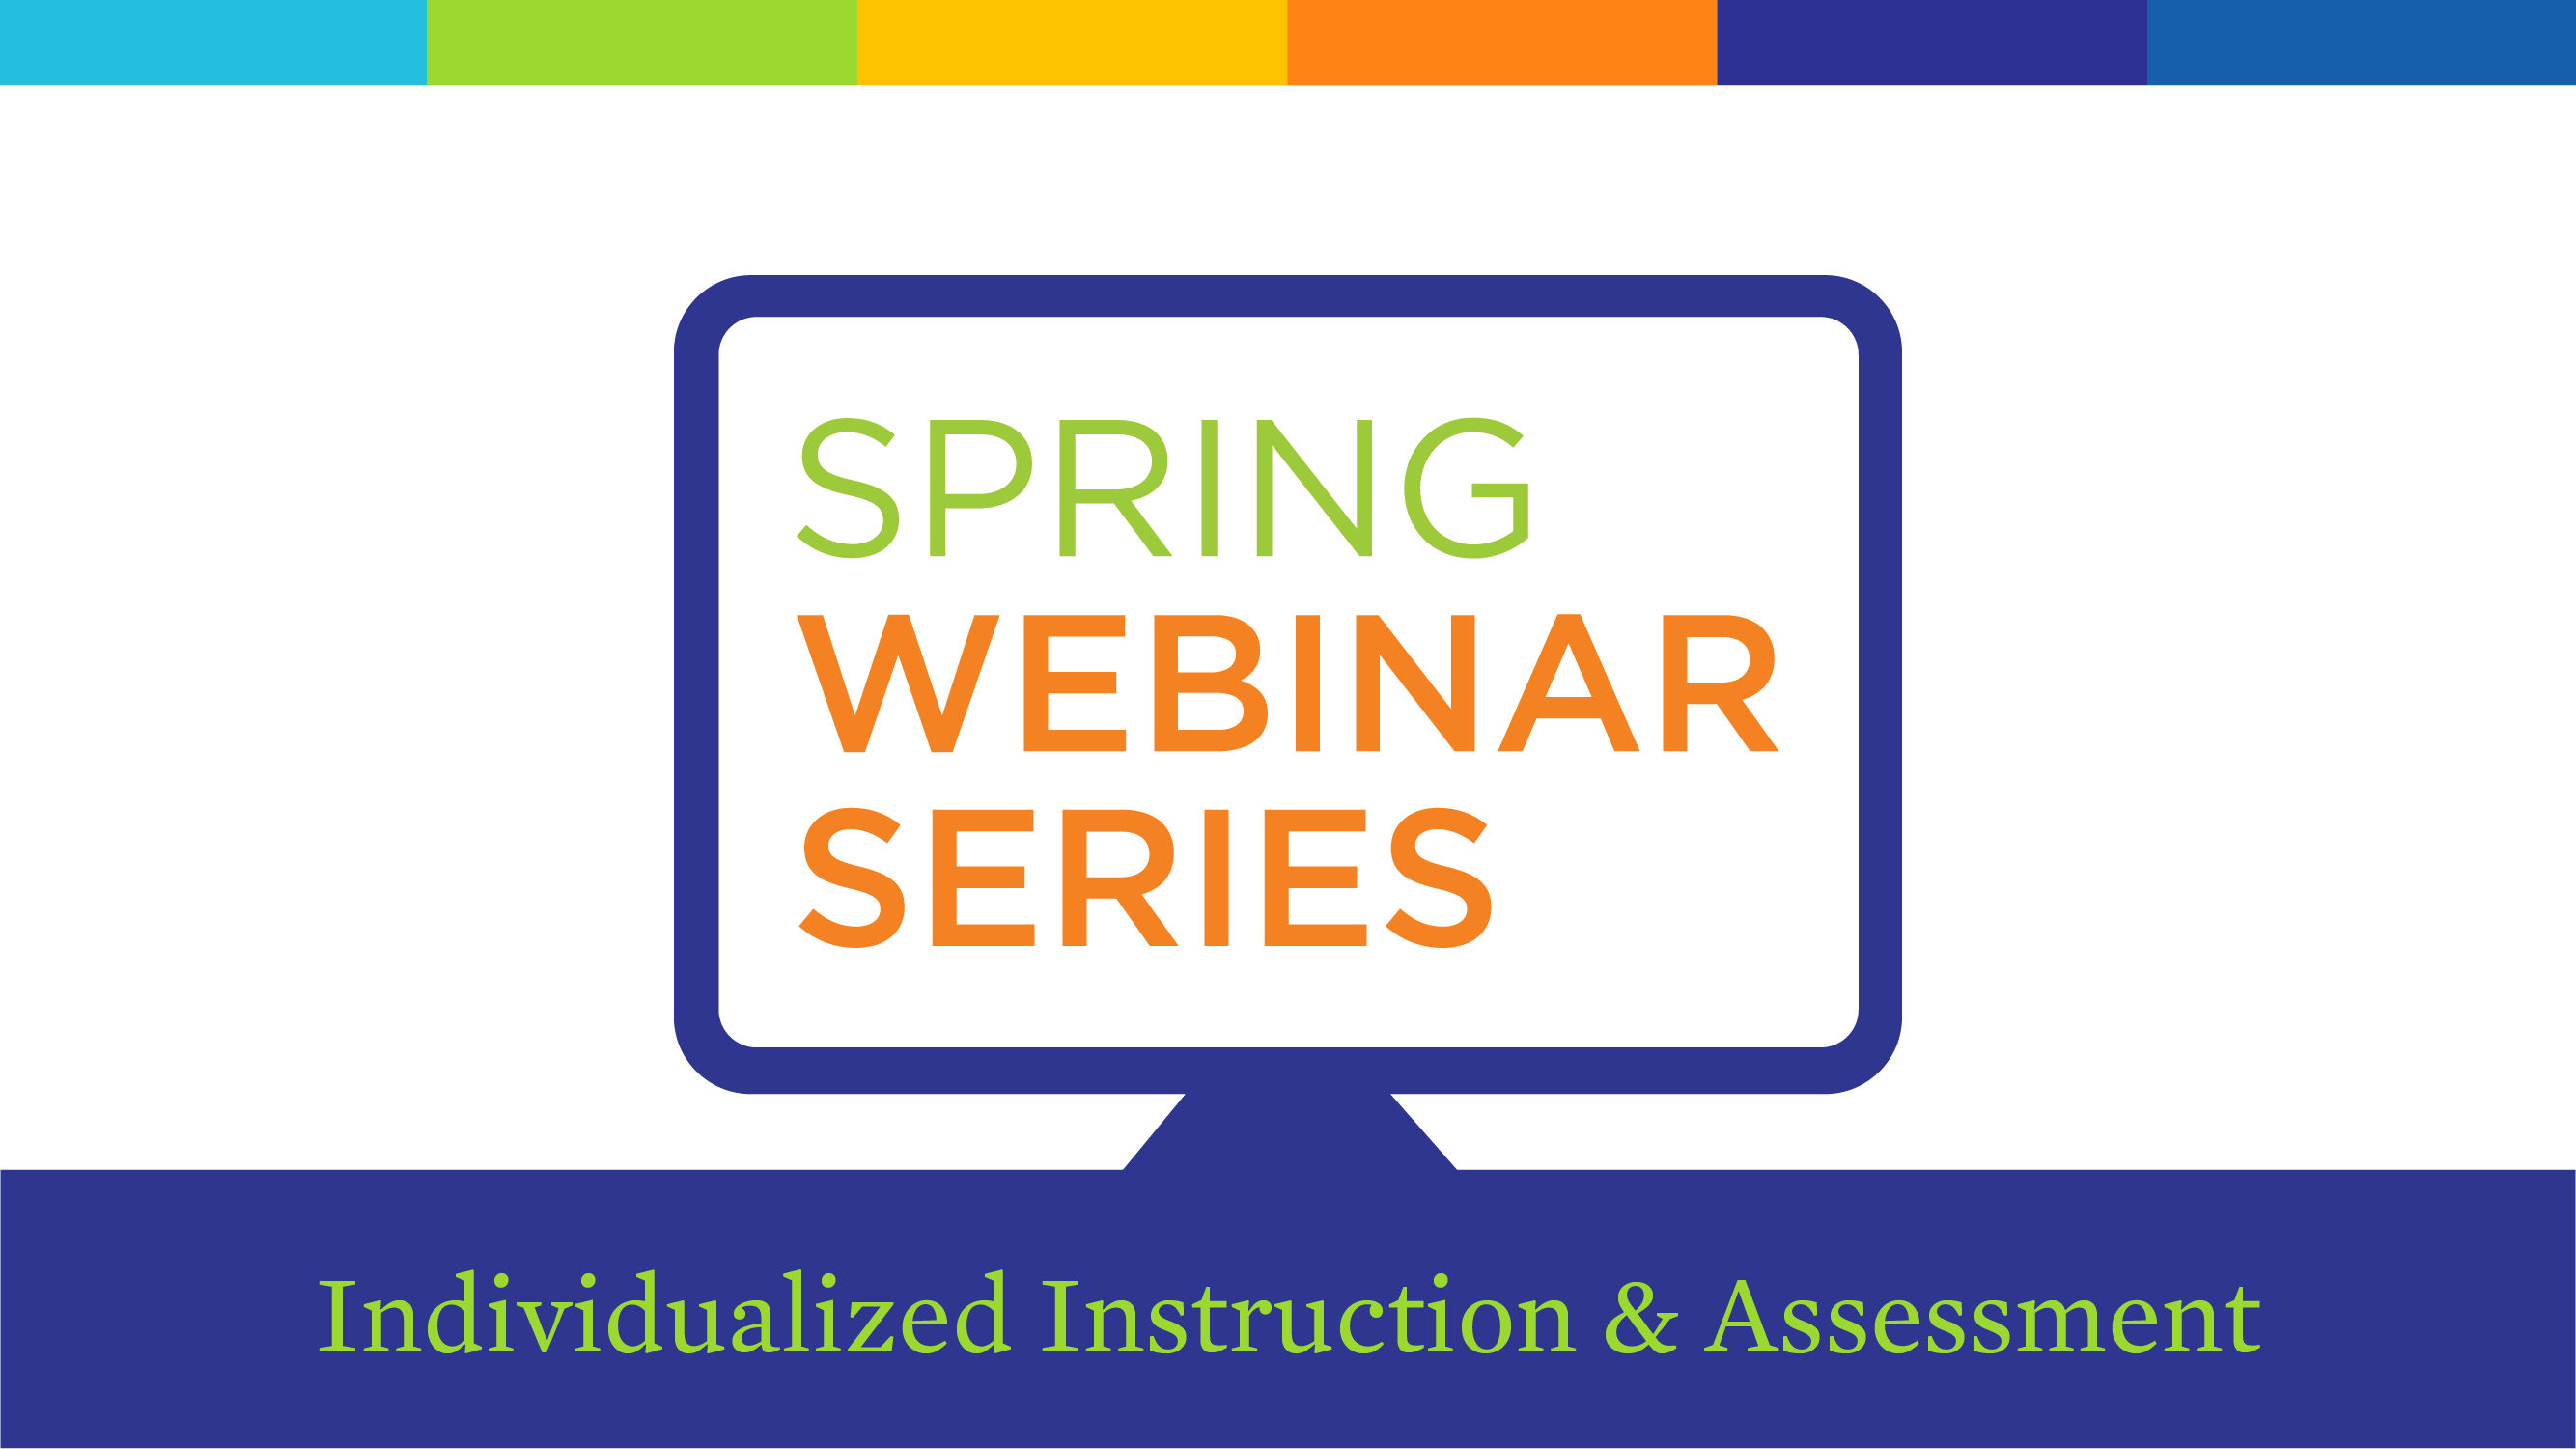 Individualized instruction and assessment - spring webinar series